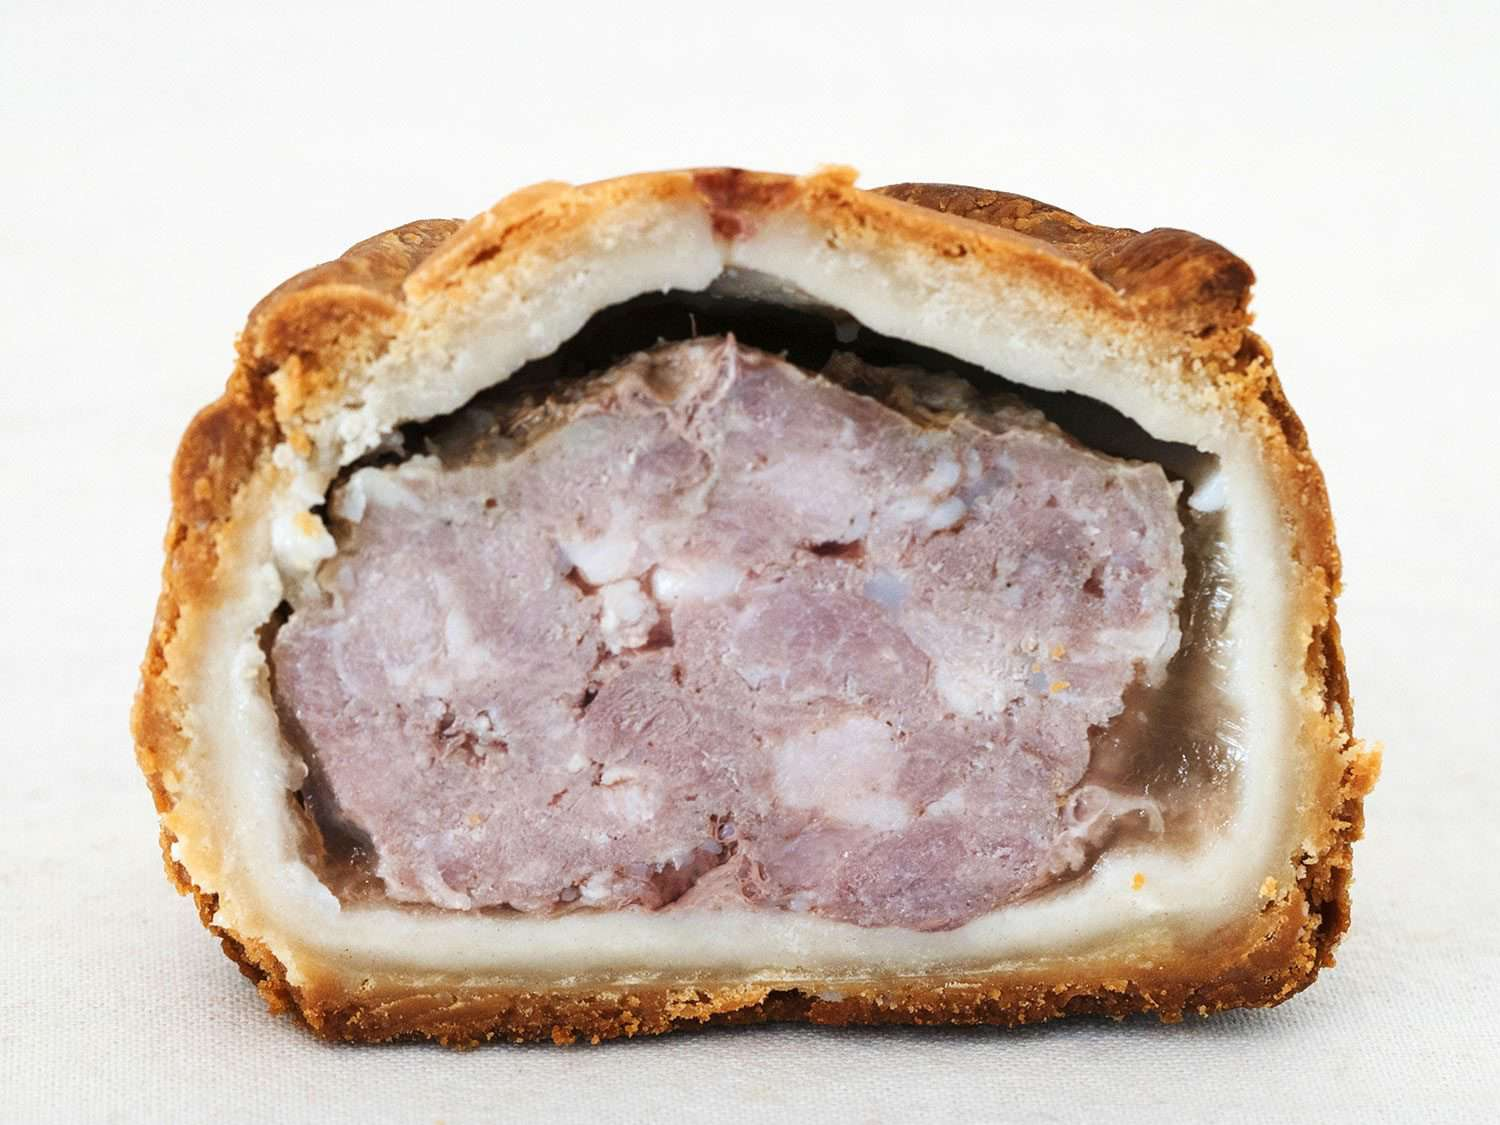 Interior of a Melton Mowbray pork pie, showing the meat filling, layer of jelly, and pastry crust outside